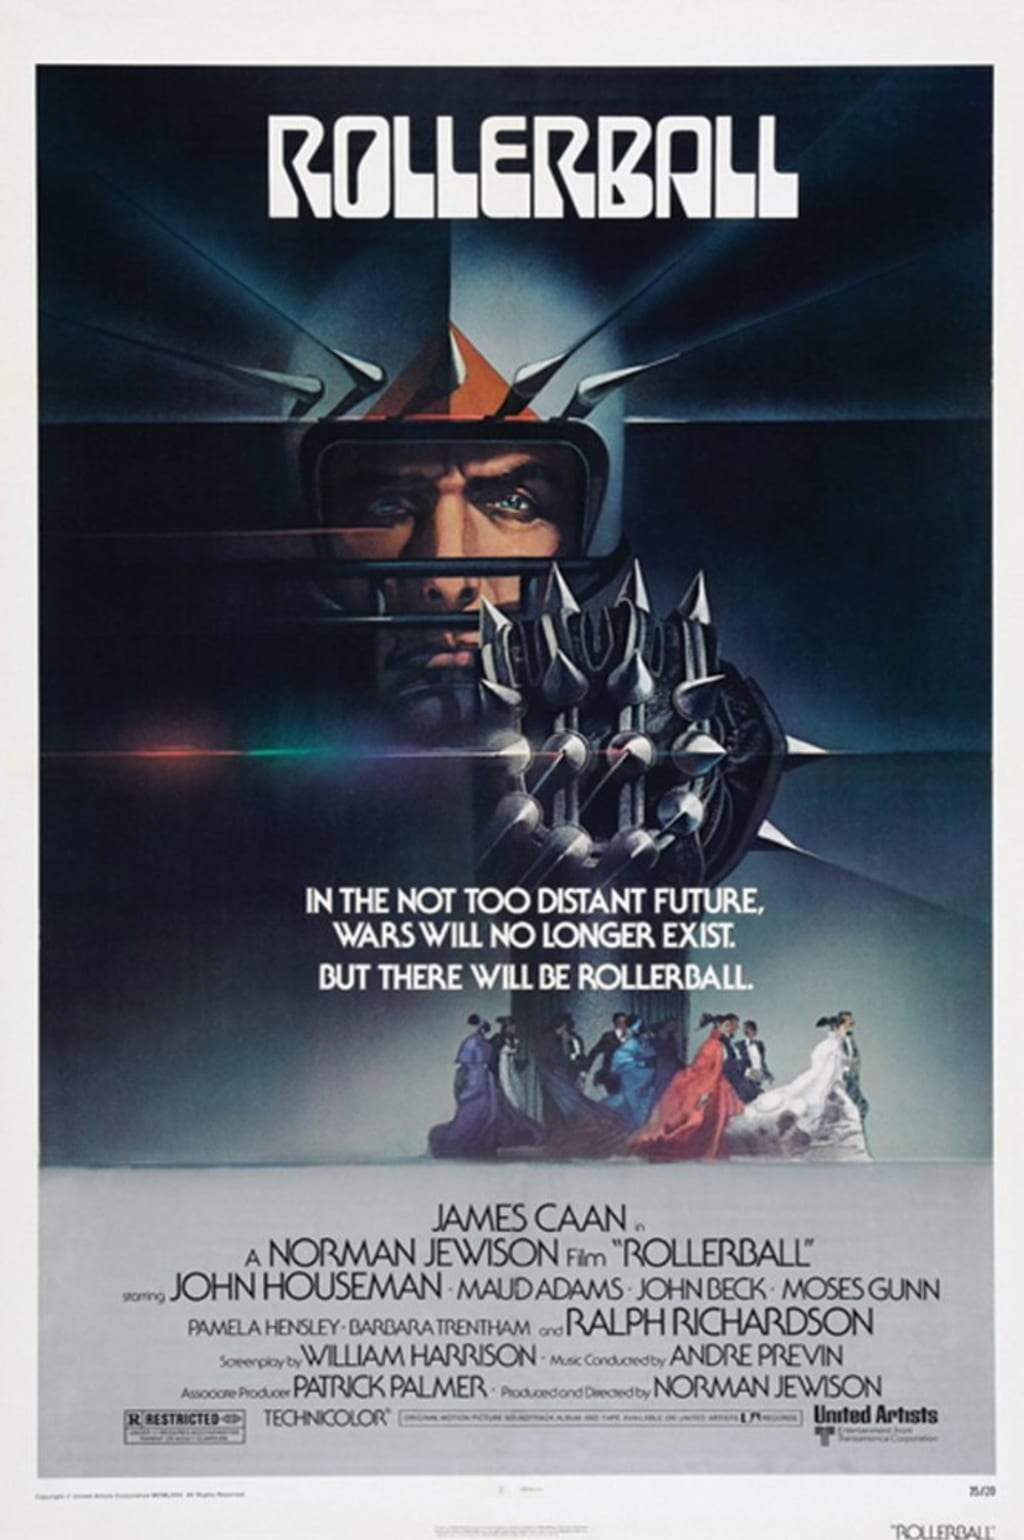 The Science Fiction of Rollerball Is Nothing Compared to the Facts of Real Life Control